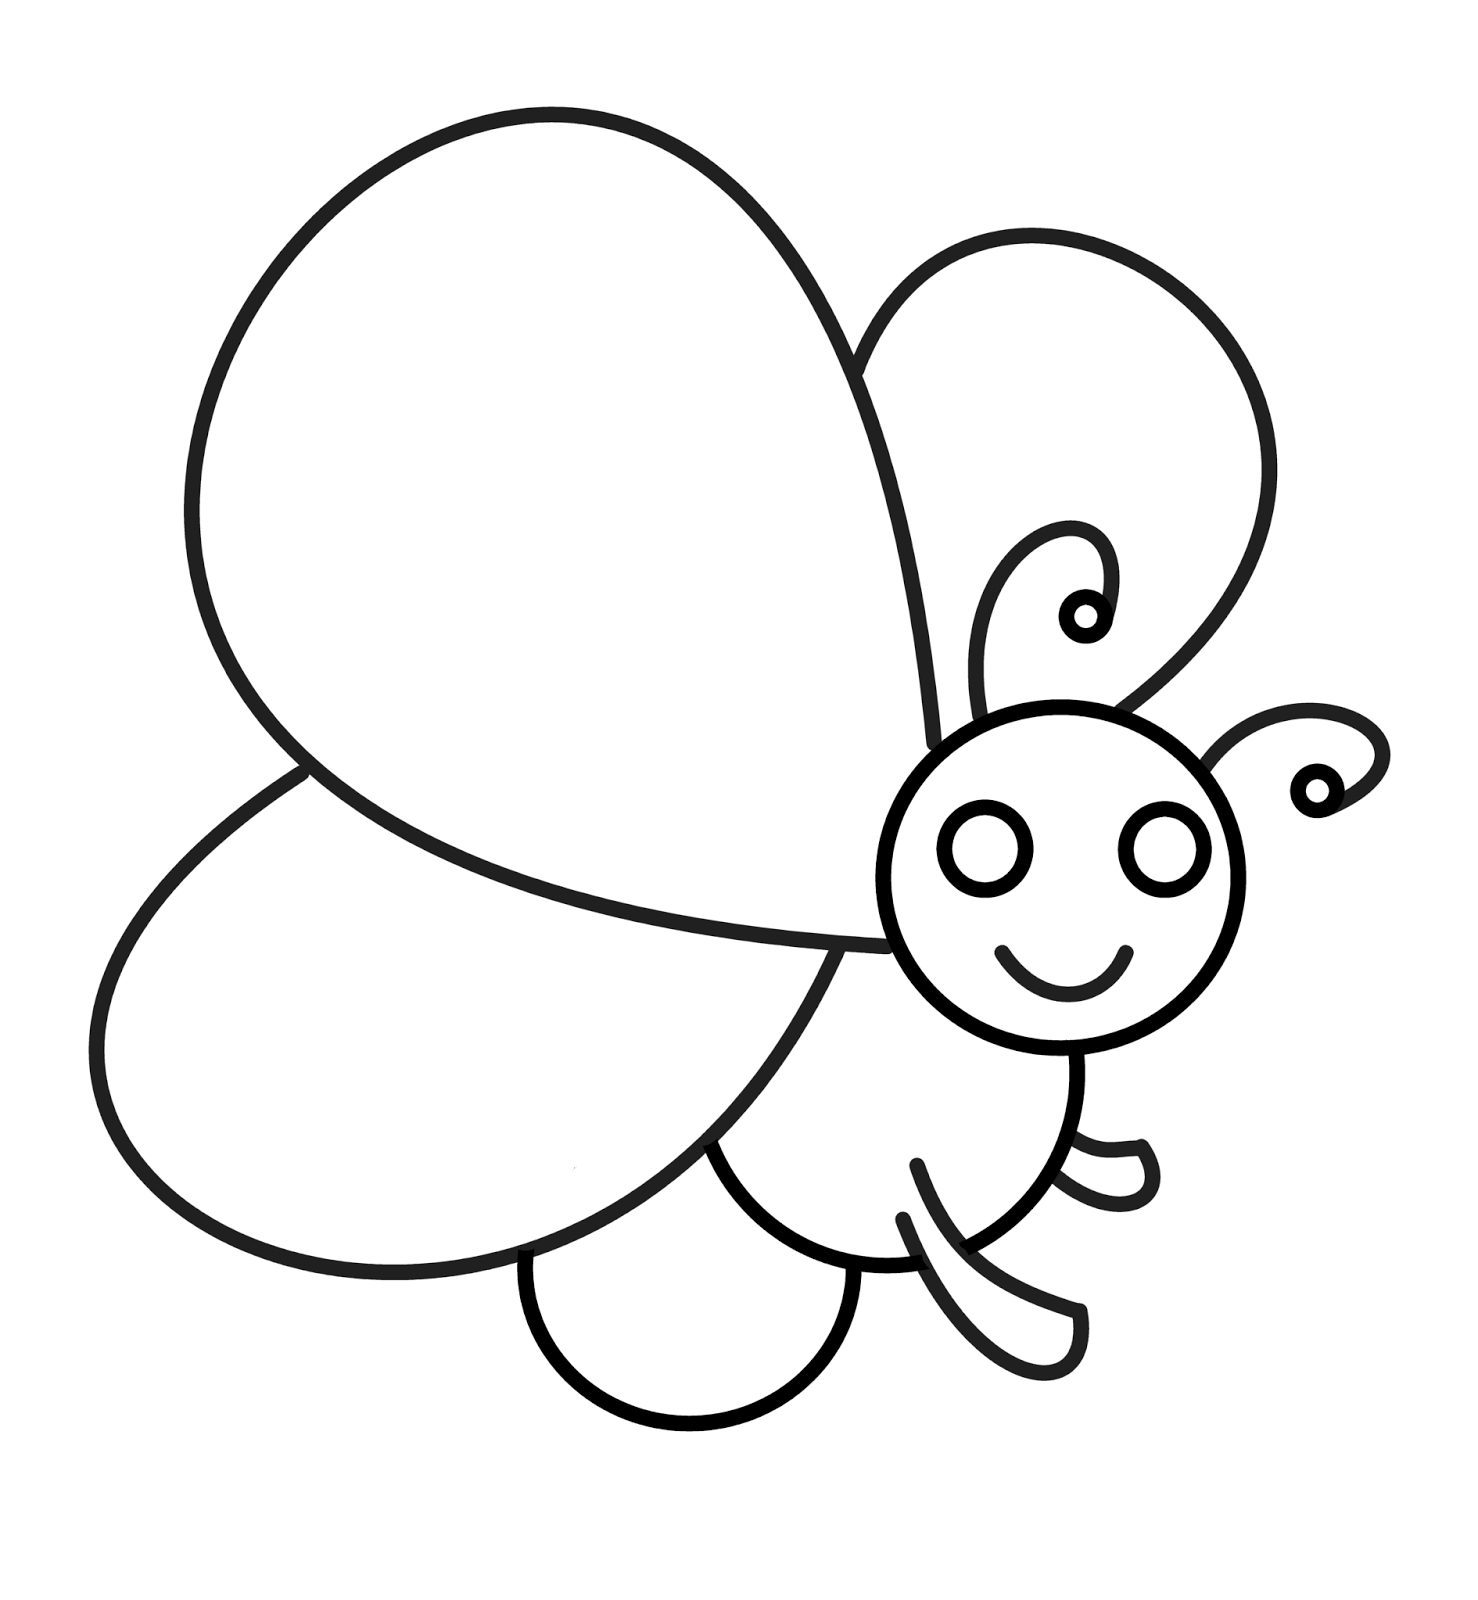 Pencil Drawing Images Cartoons: Pencil Drawing Of Butterfly At GetDrawings